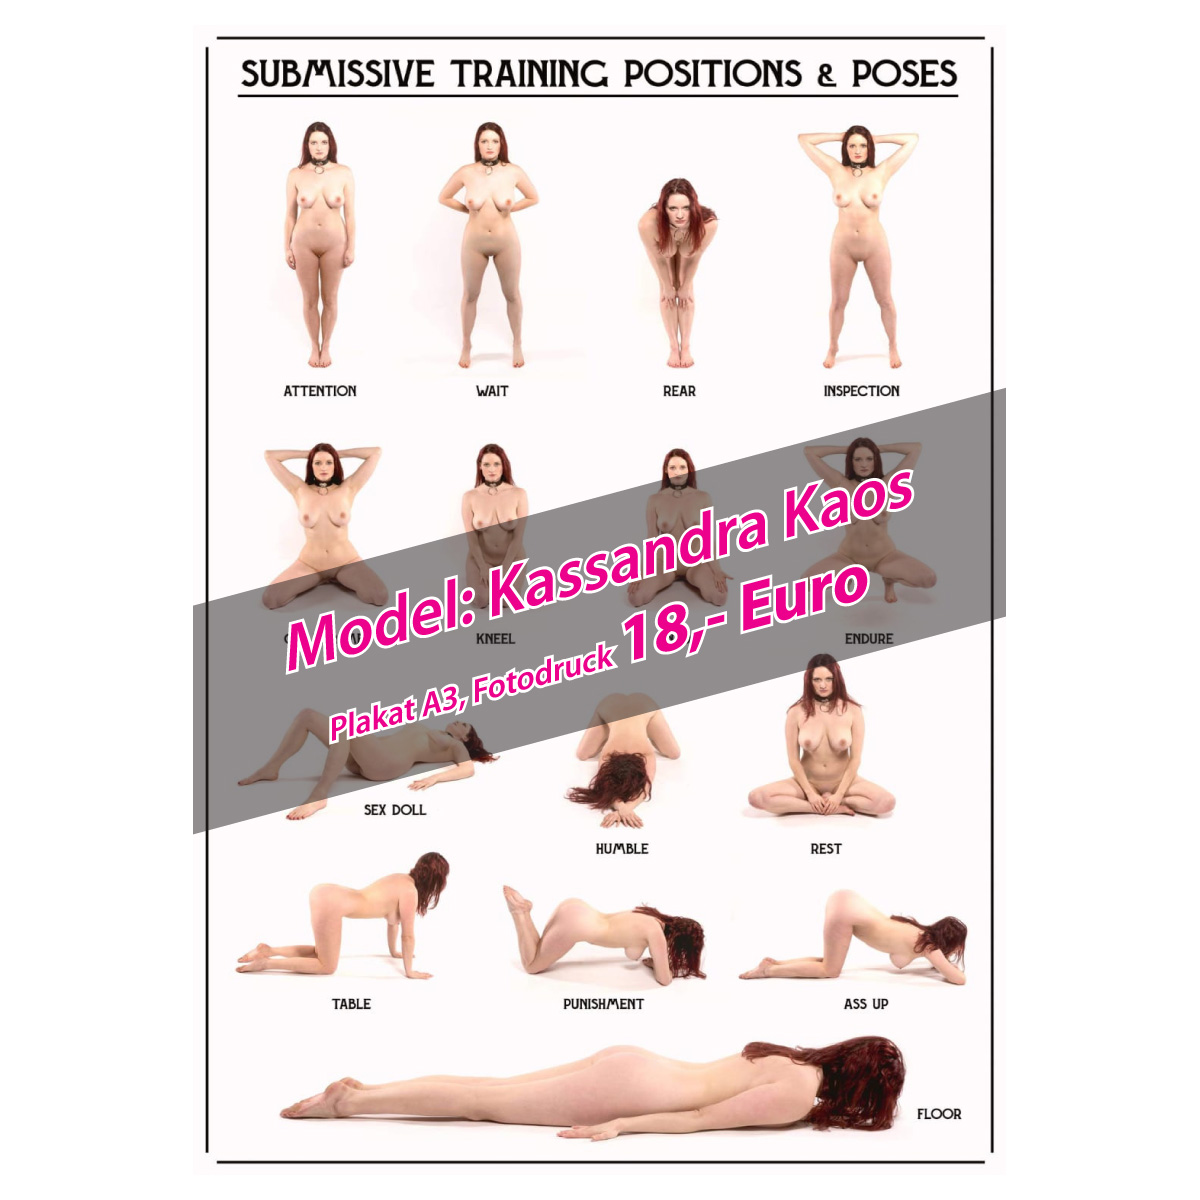 Fotoposter: submissive Training-Positions & -Poses